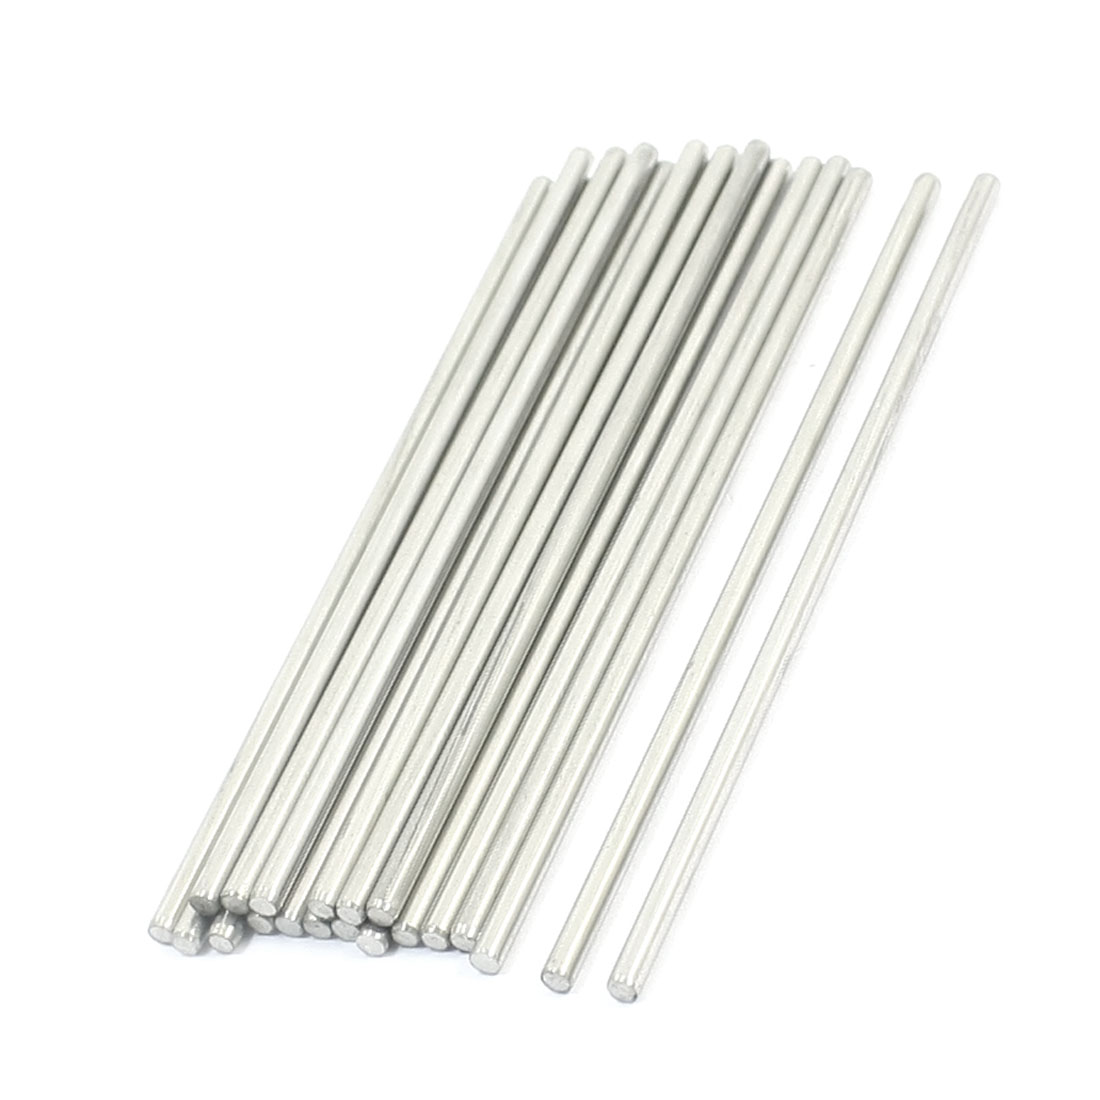 20PCS RC Car Toy Spare Part Stainless Steel Round Bar Shaft 90mmx2.5mm